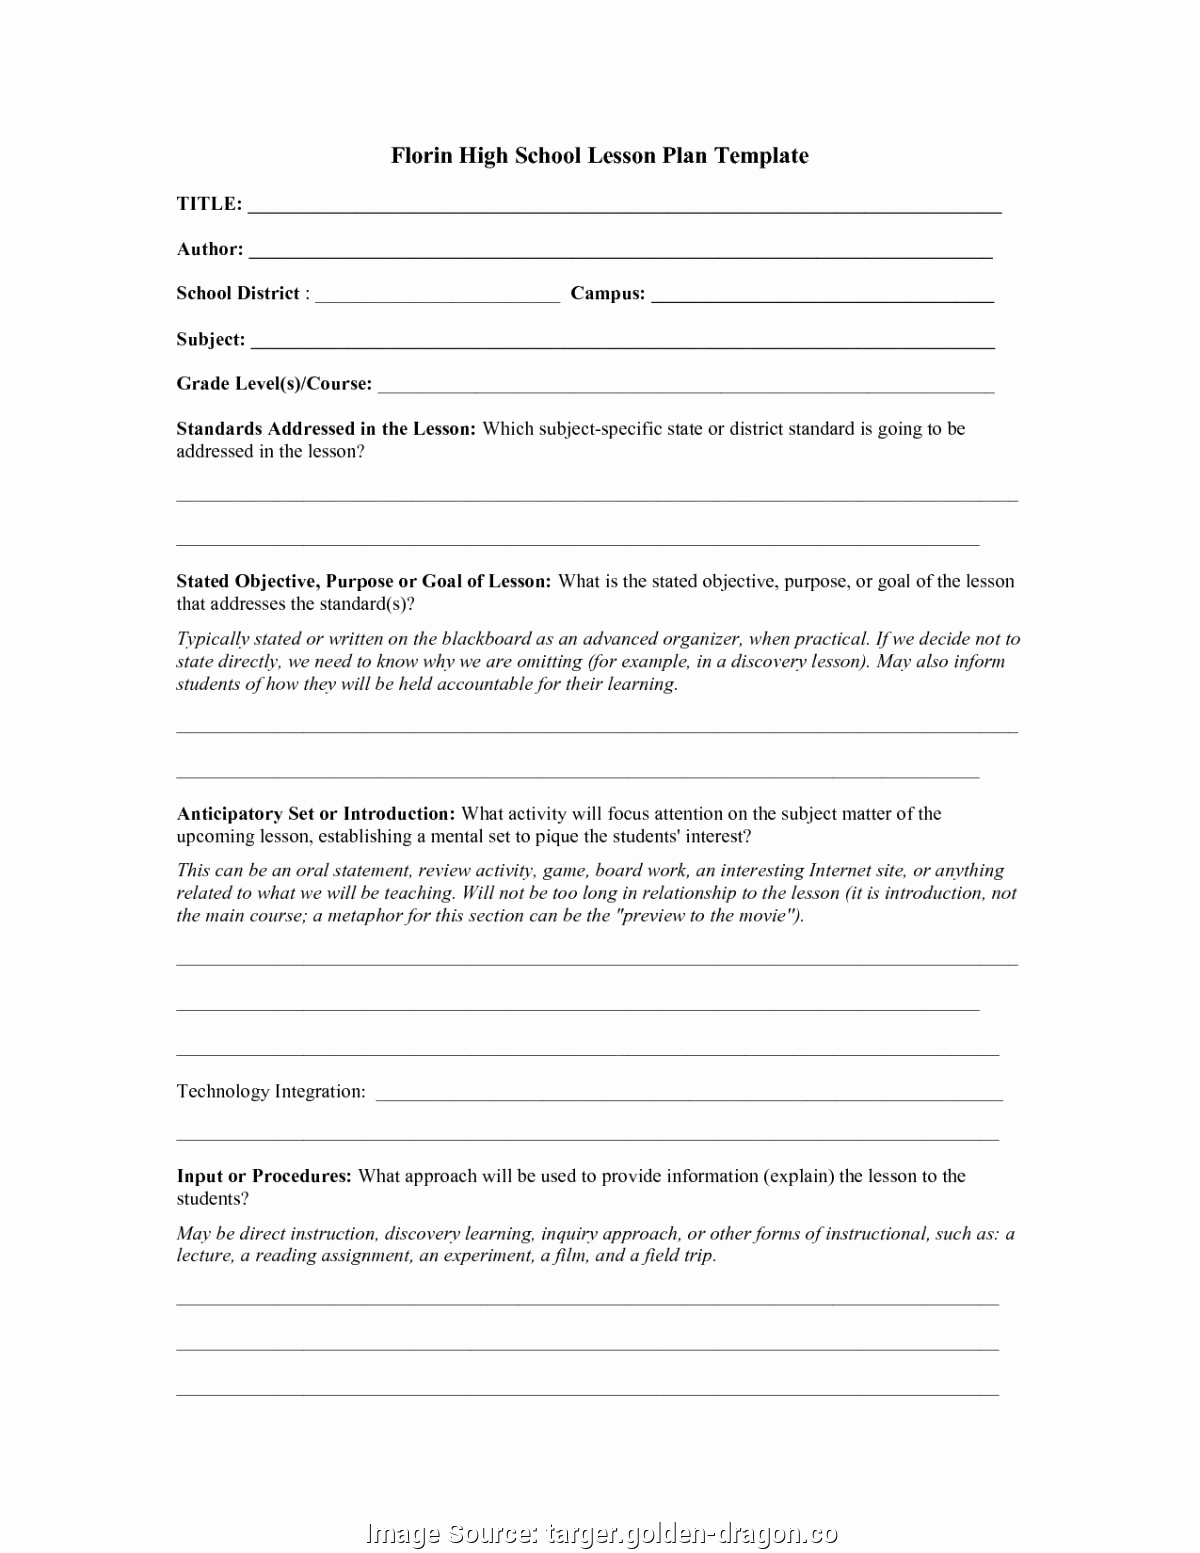 History Lesson Plan Template Unique Briliant Lesson Plans for 3 Year Olds Fine Motor Skills